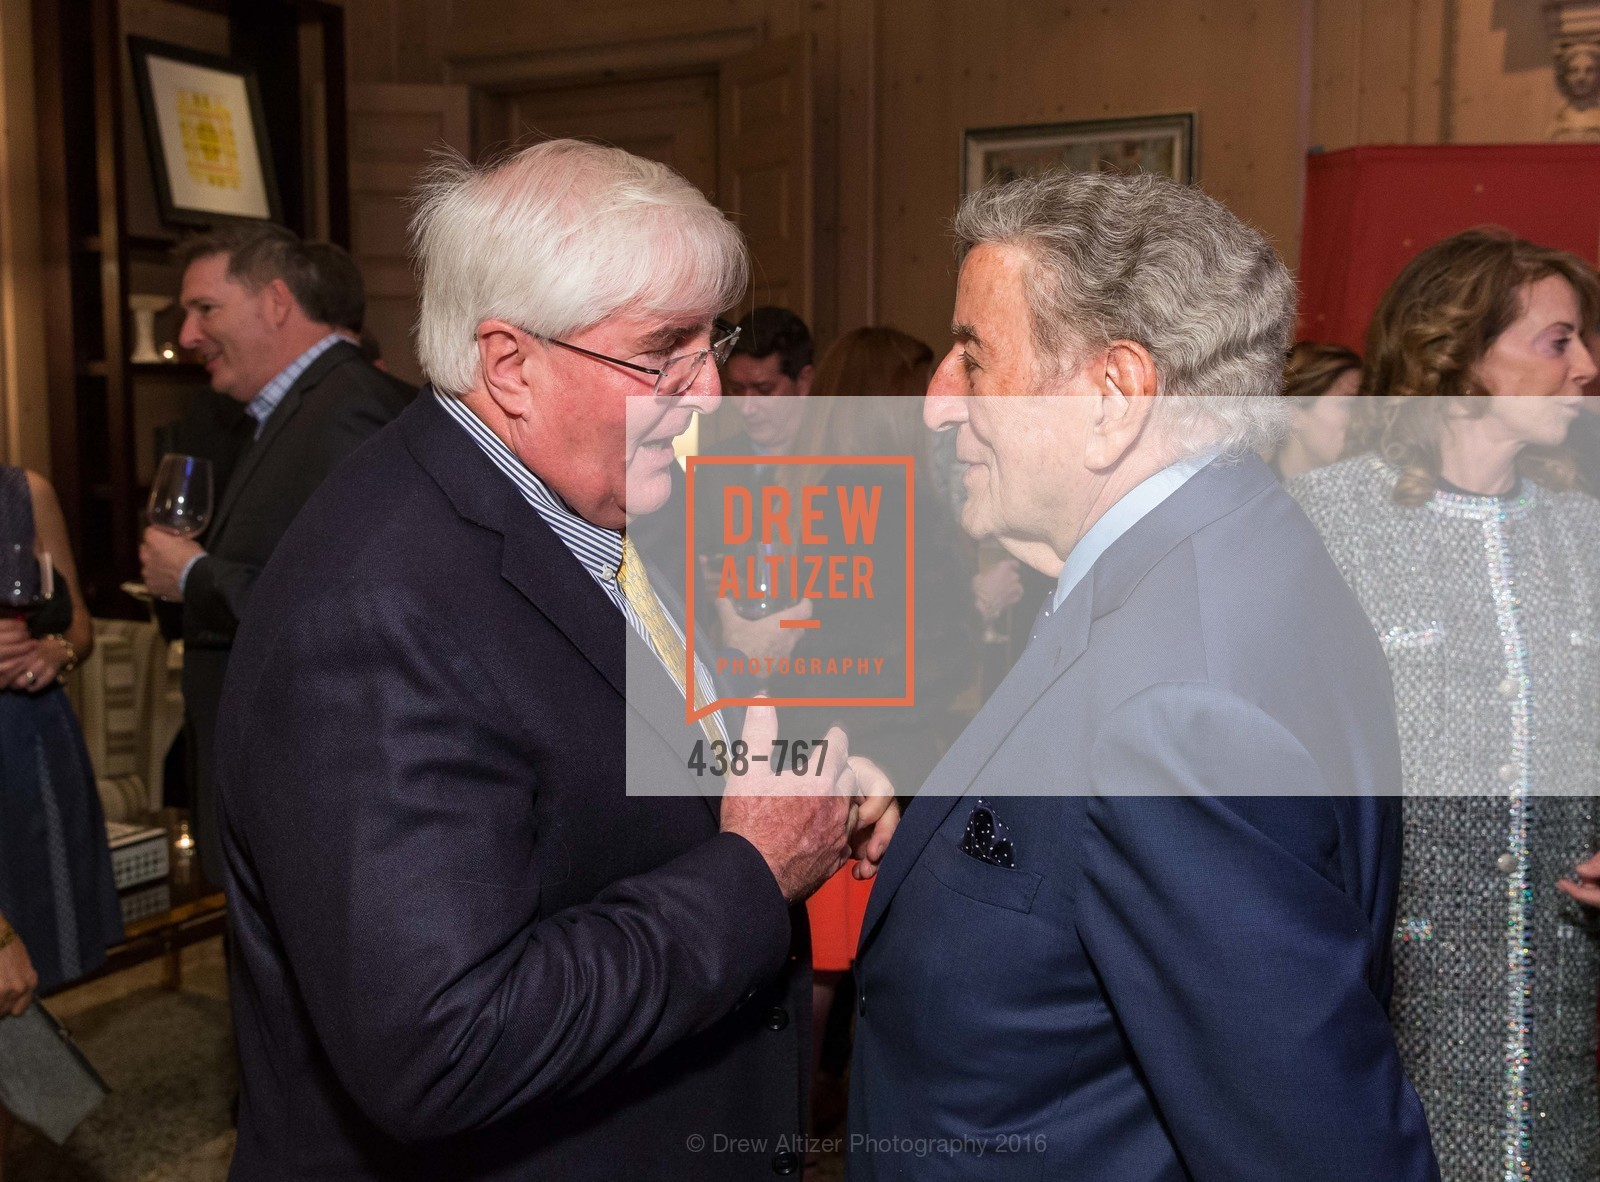 Ron Conway, Tony Bennett, A Special Reception with Tony Bennett, The Fairmont, San Francisco, The Penthouse Suite, January 26th, 2016,Drew Altizer, Drew Altizer Photography, full-service event agency, private events, San Francisco photographer, photographer California